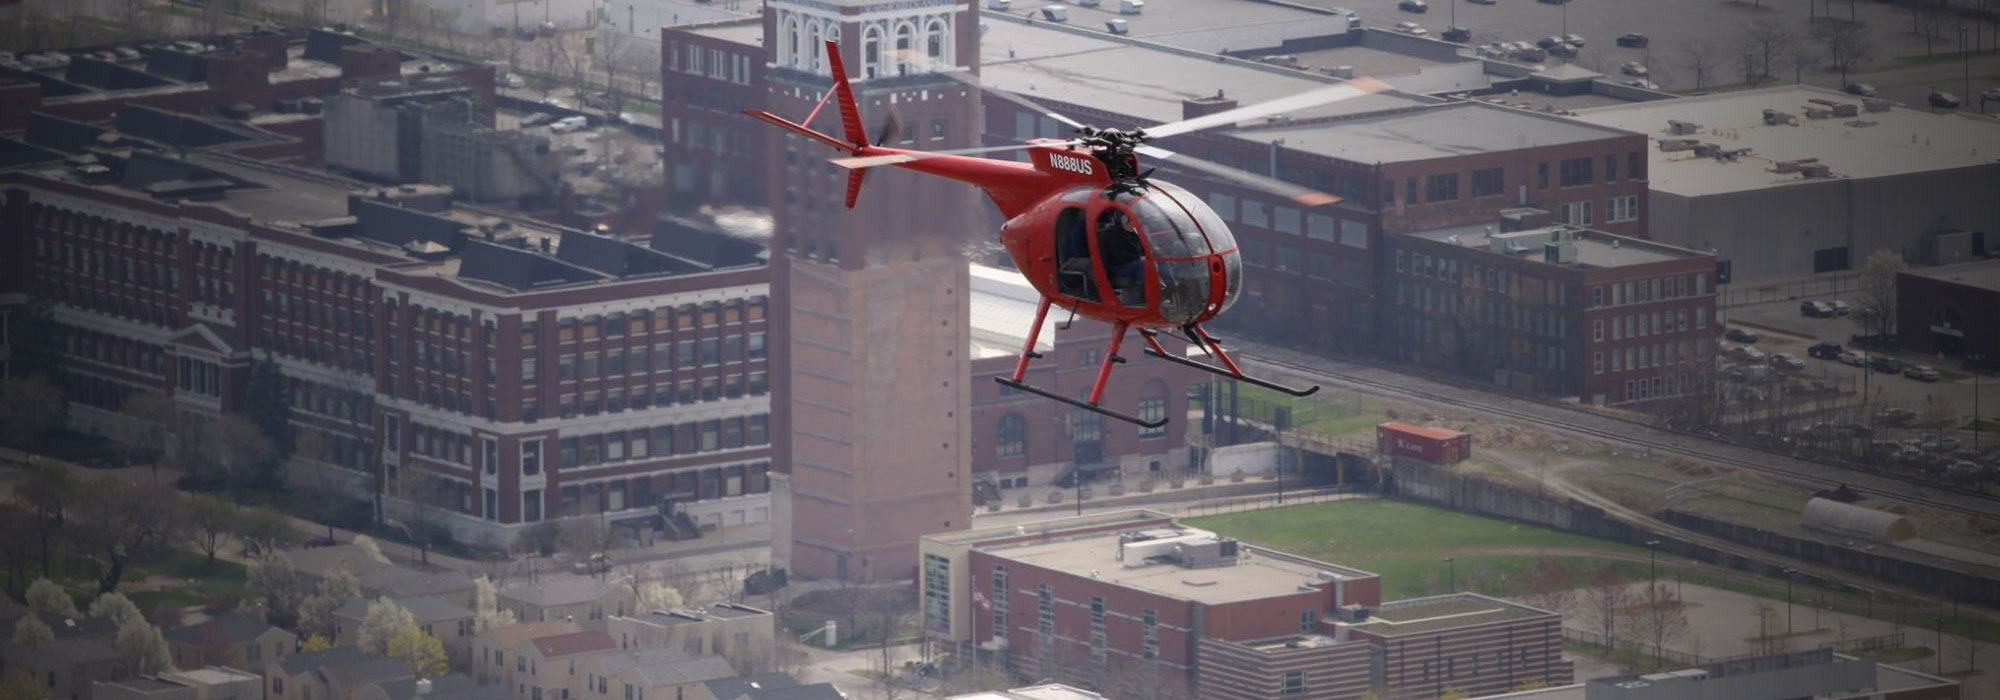 Chicago Helicopter Tours Cost